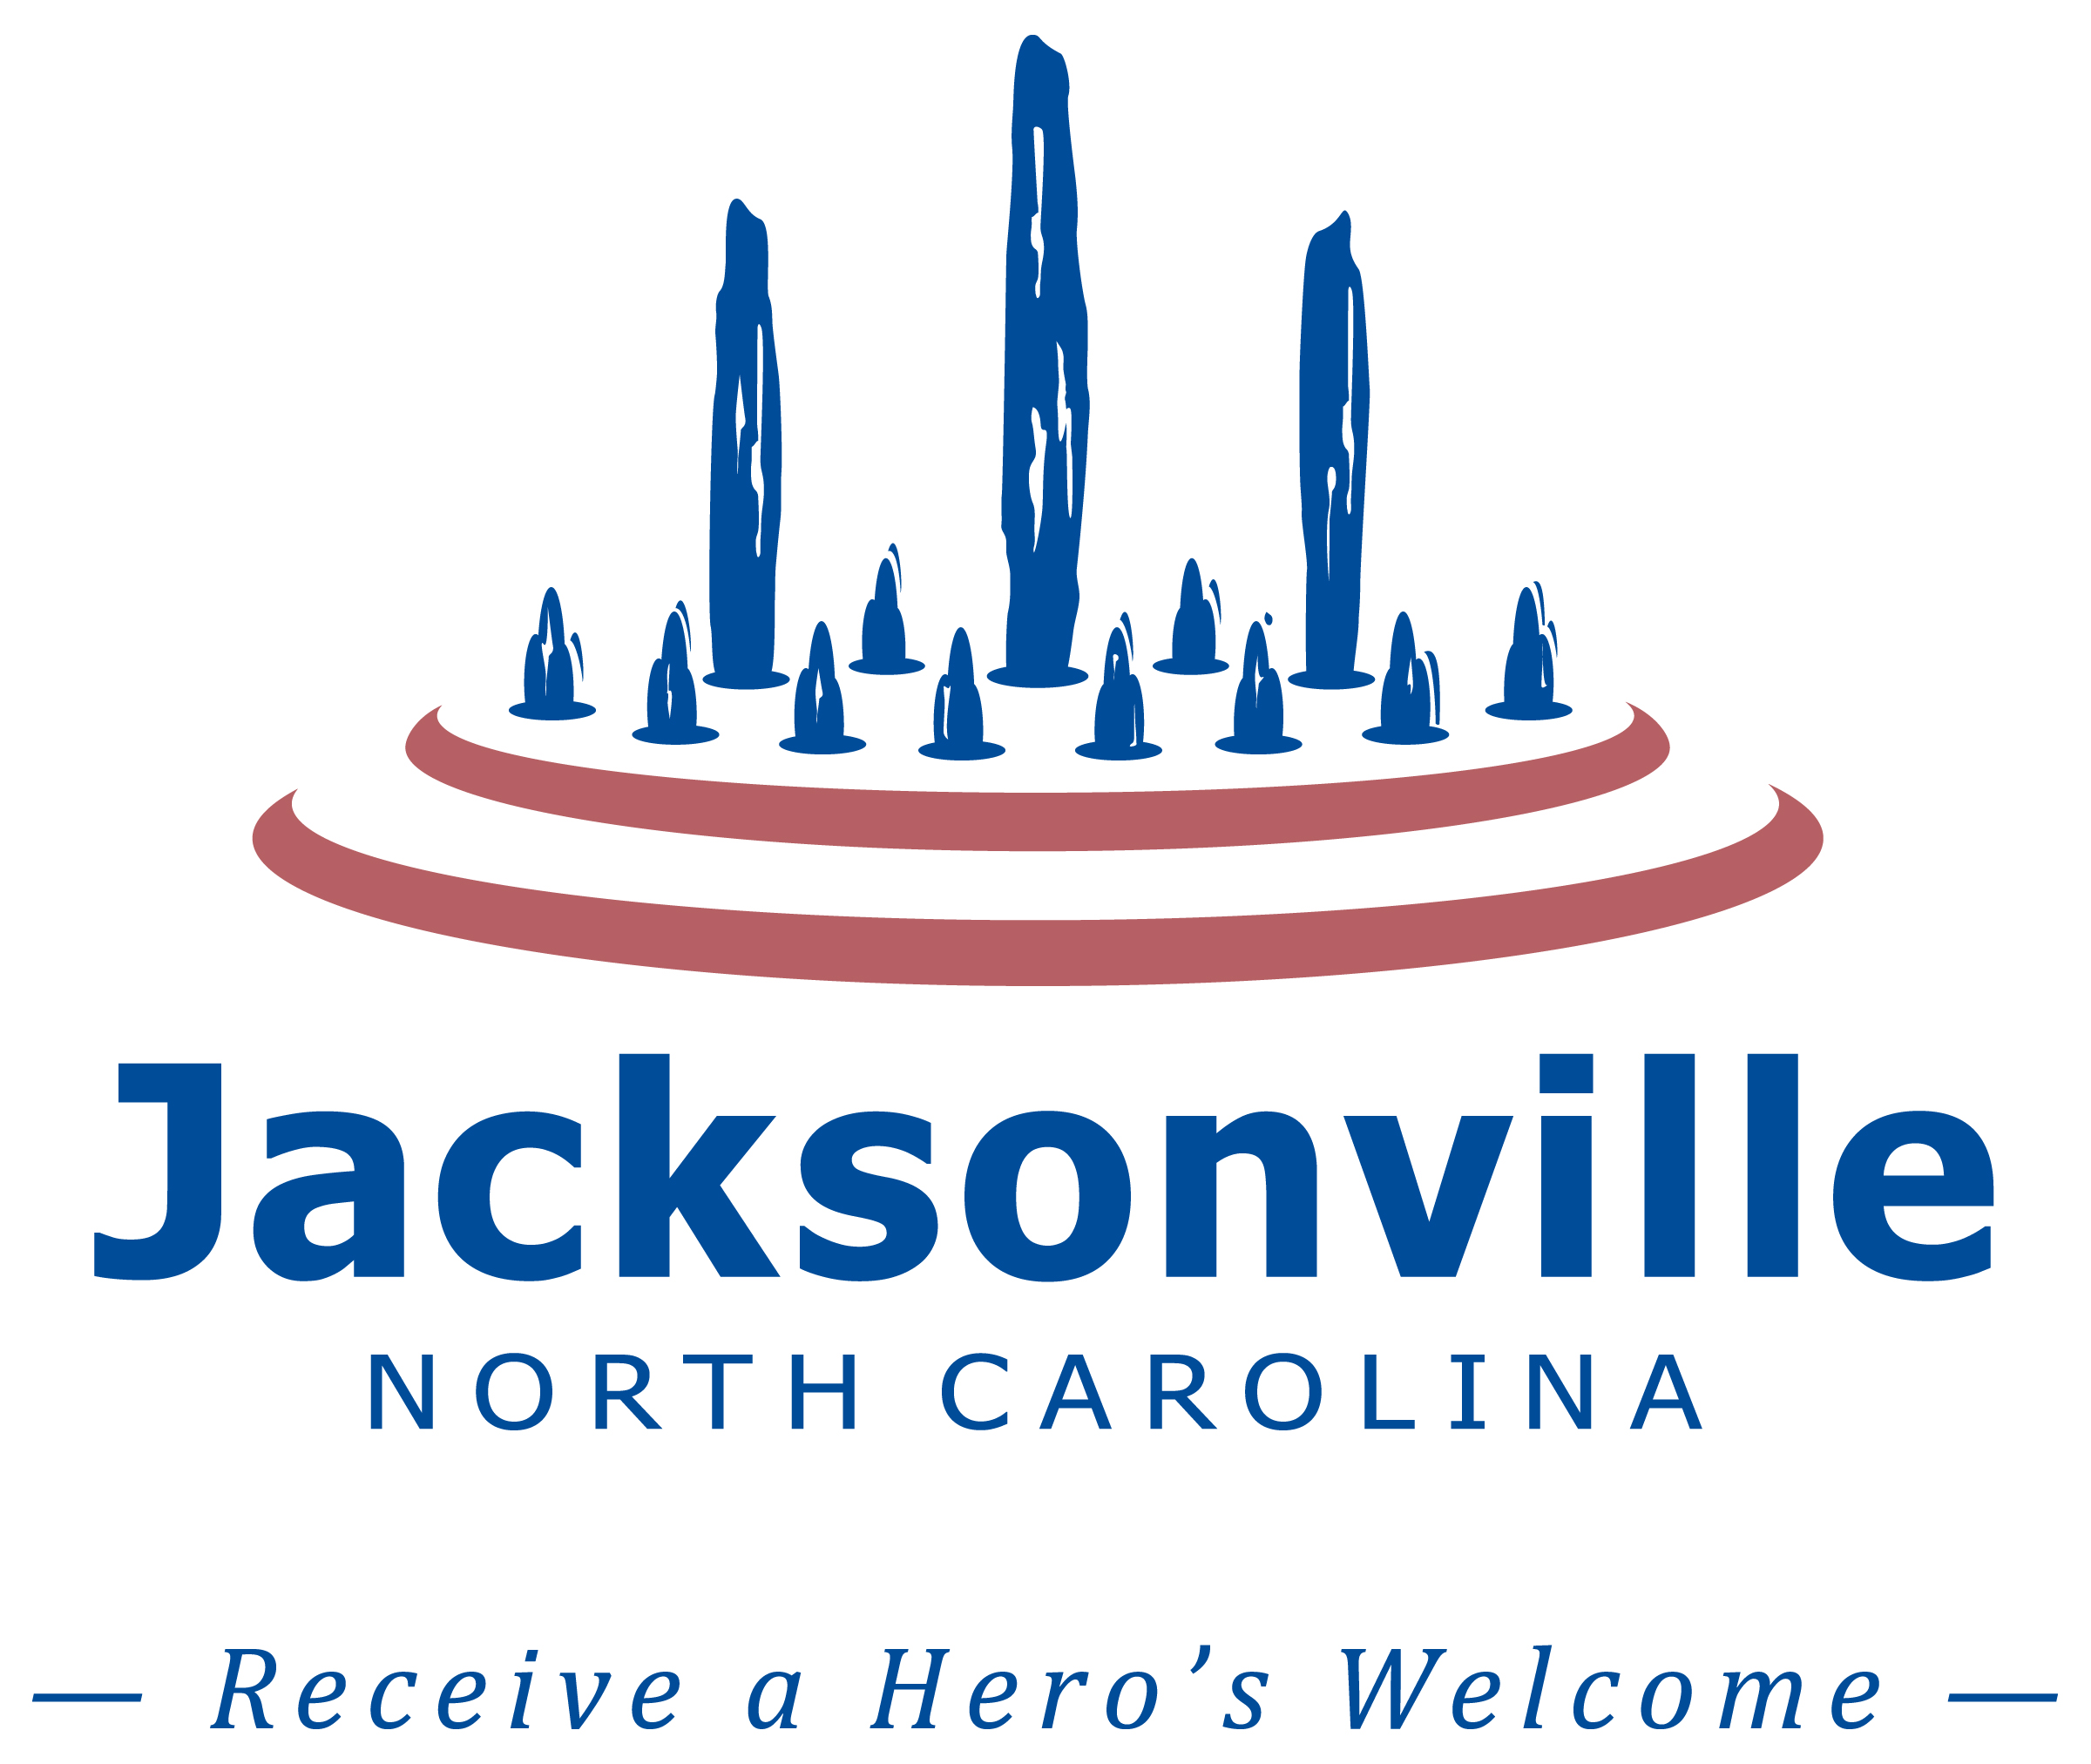 Jacksonville NC Receive a Hero's Welcome